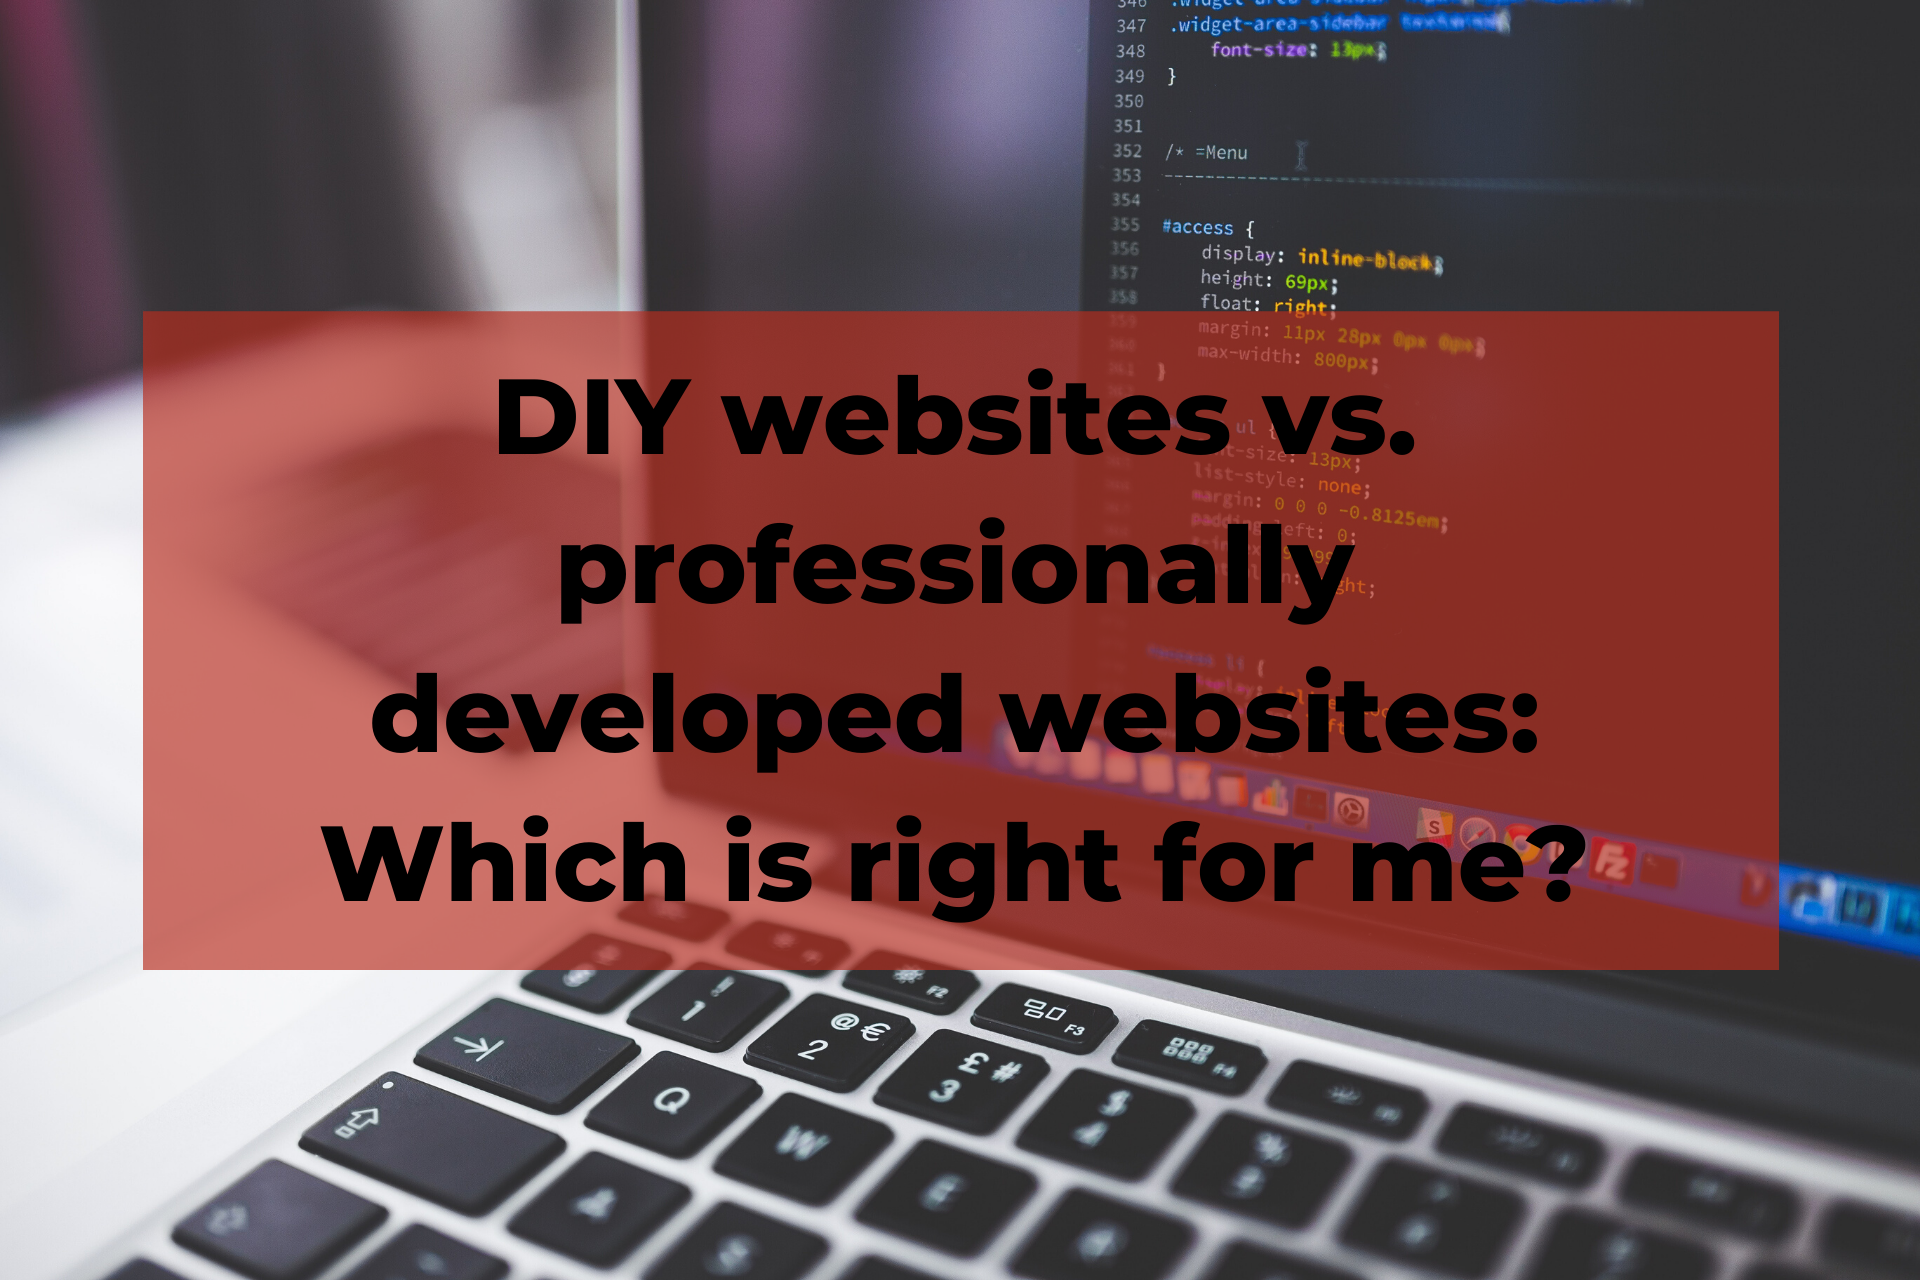 DIY websites vs. professionally developed websites: Which is right for me?